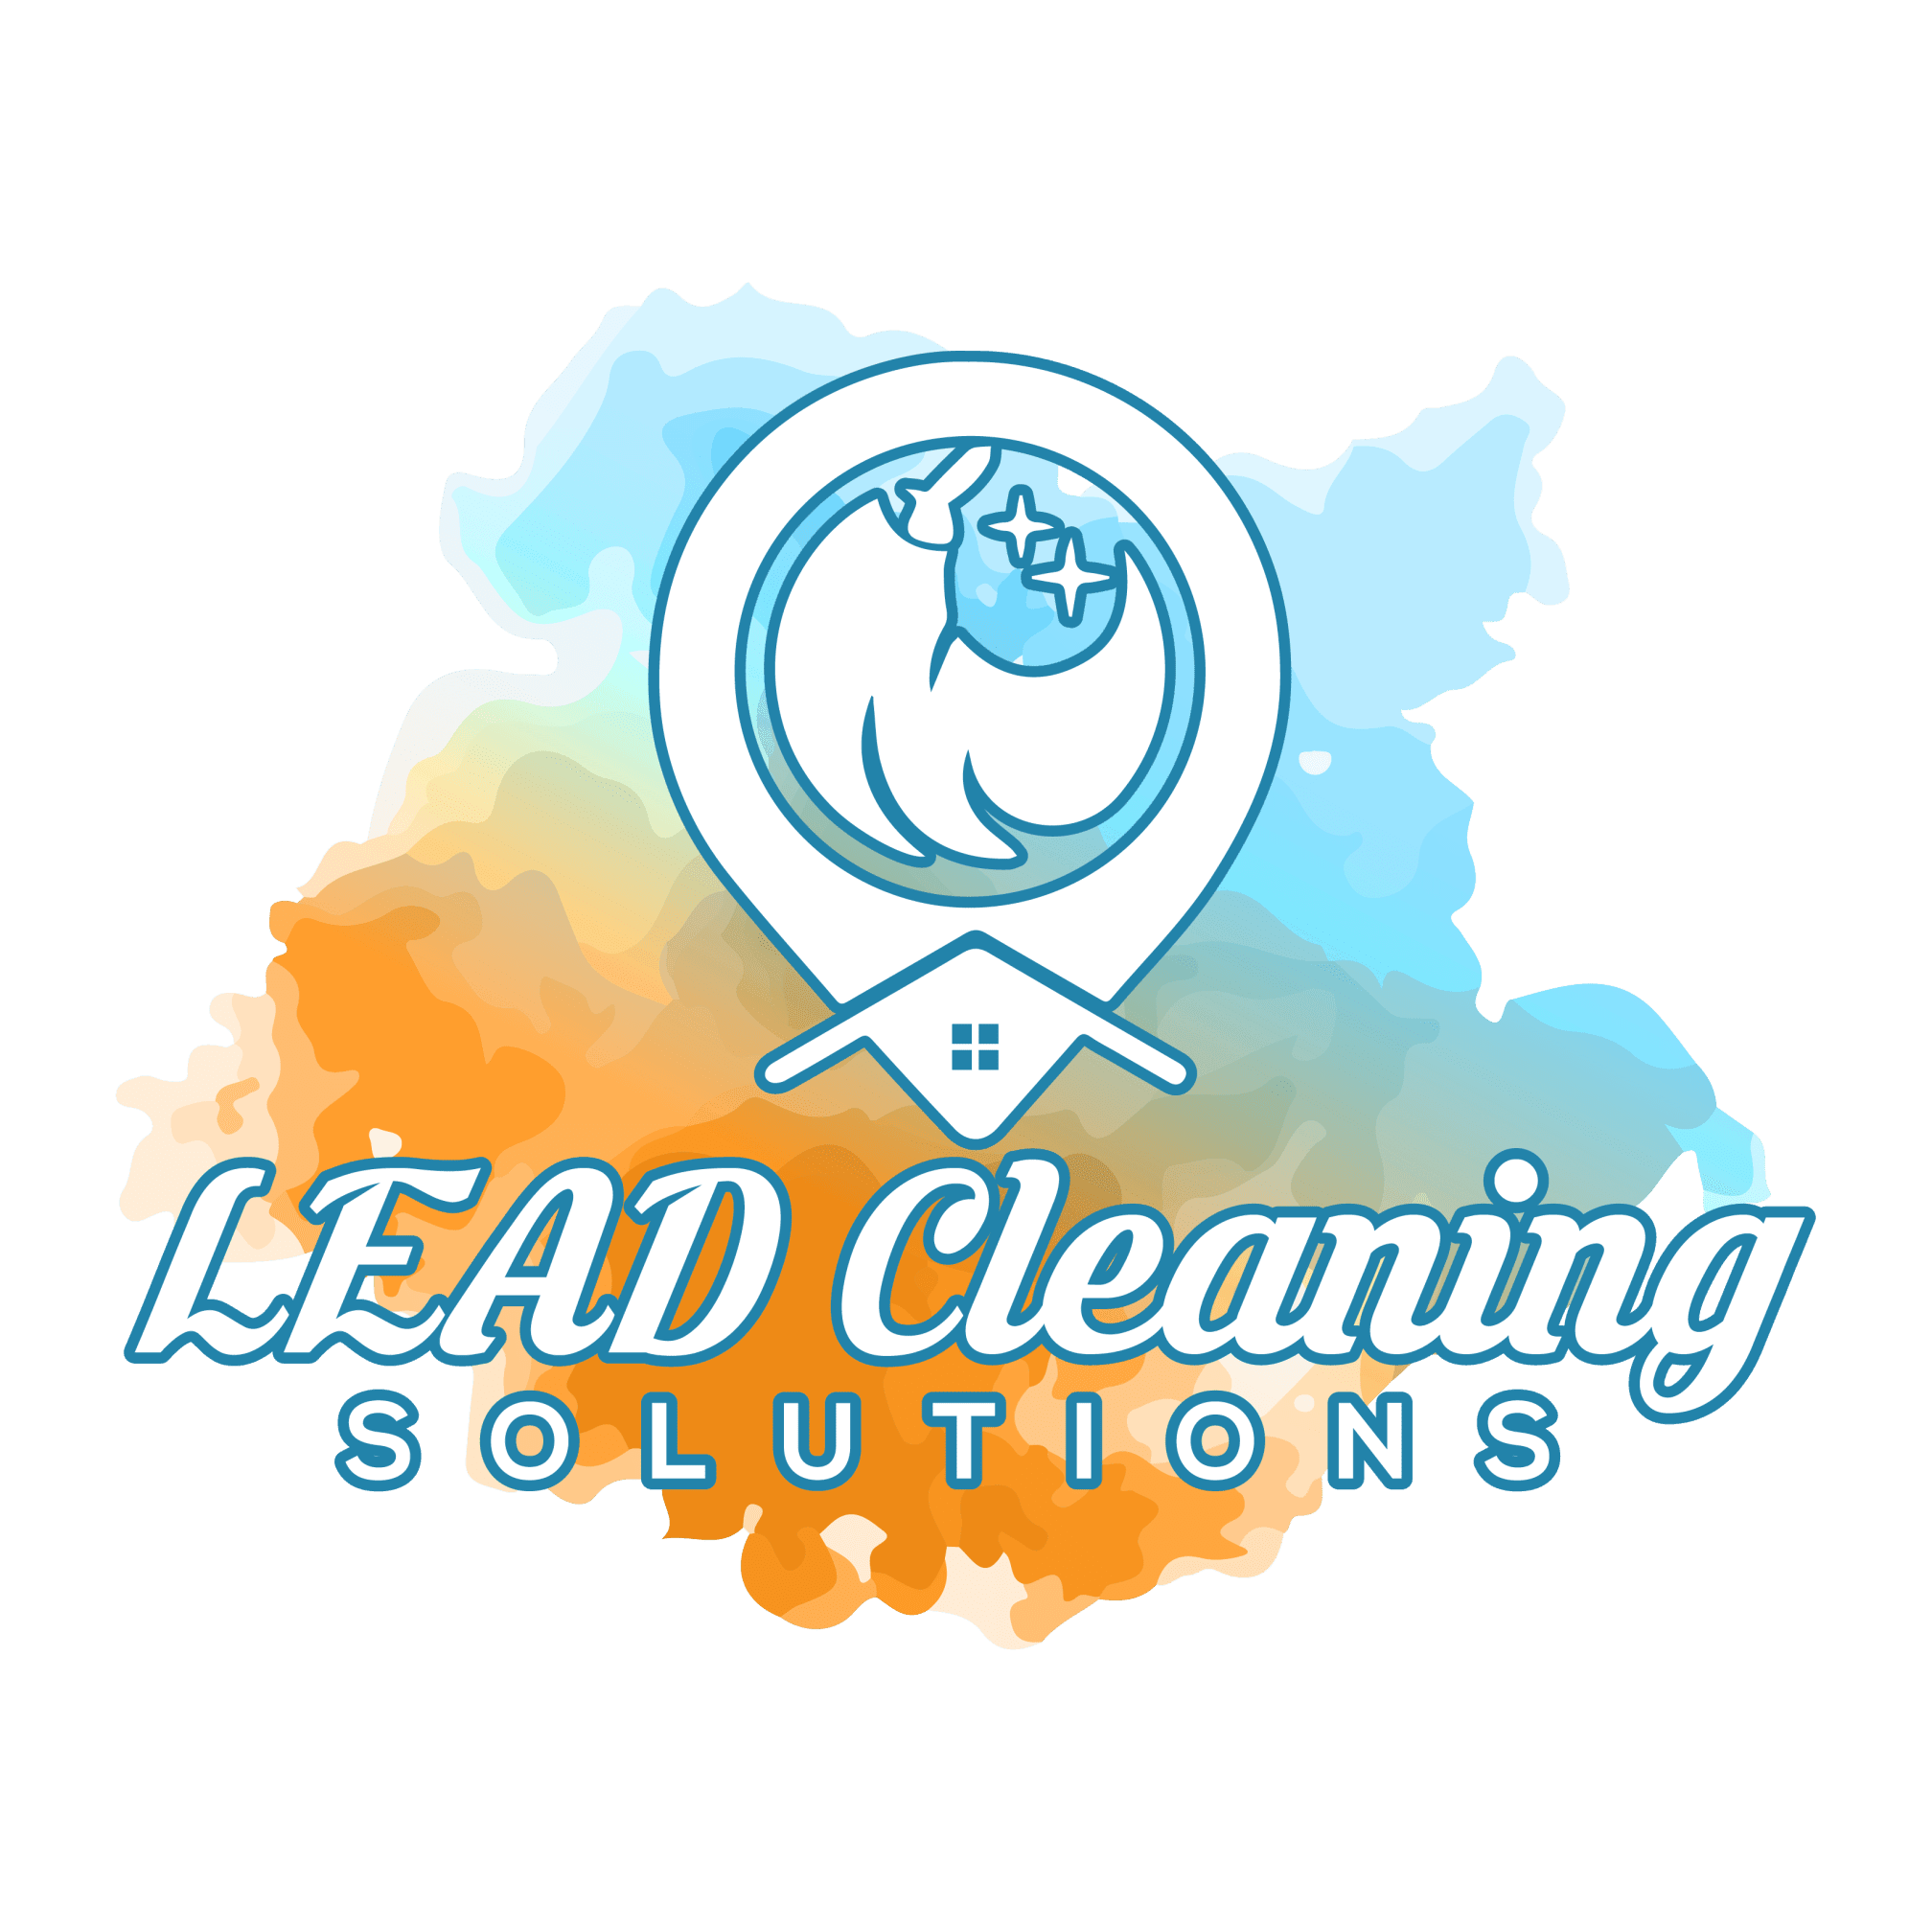 LEAD Cleaning Solutions - Oxford, Oxfordshire OX4 2NE - 07454 950027 | ShowMeLocal.com